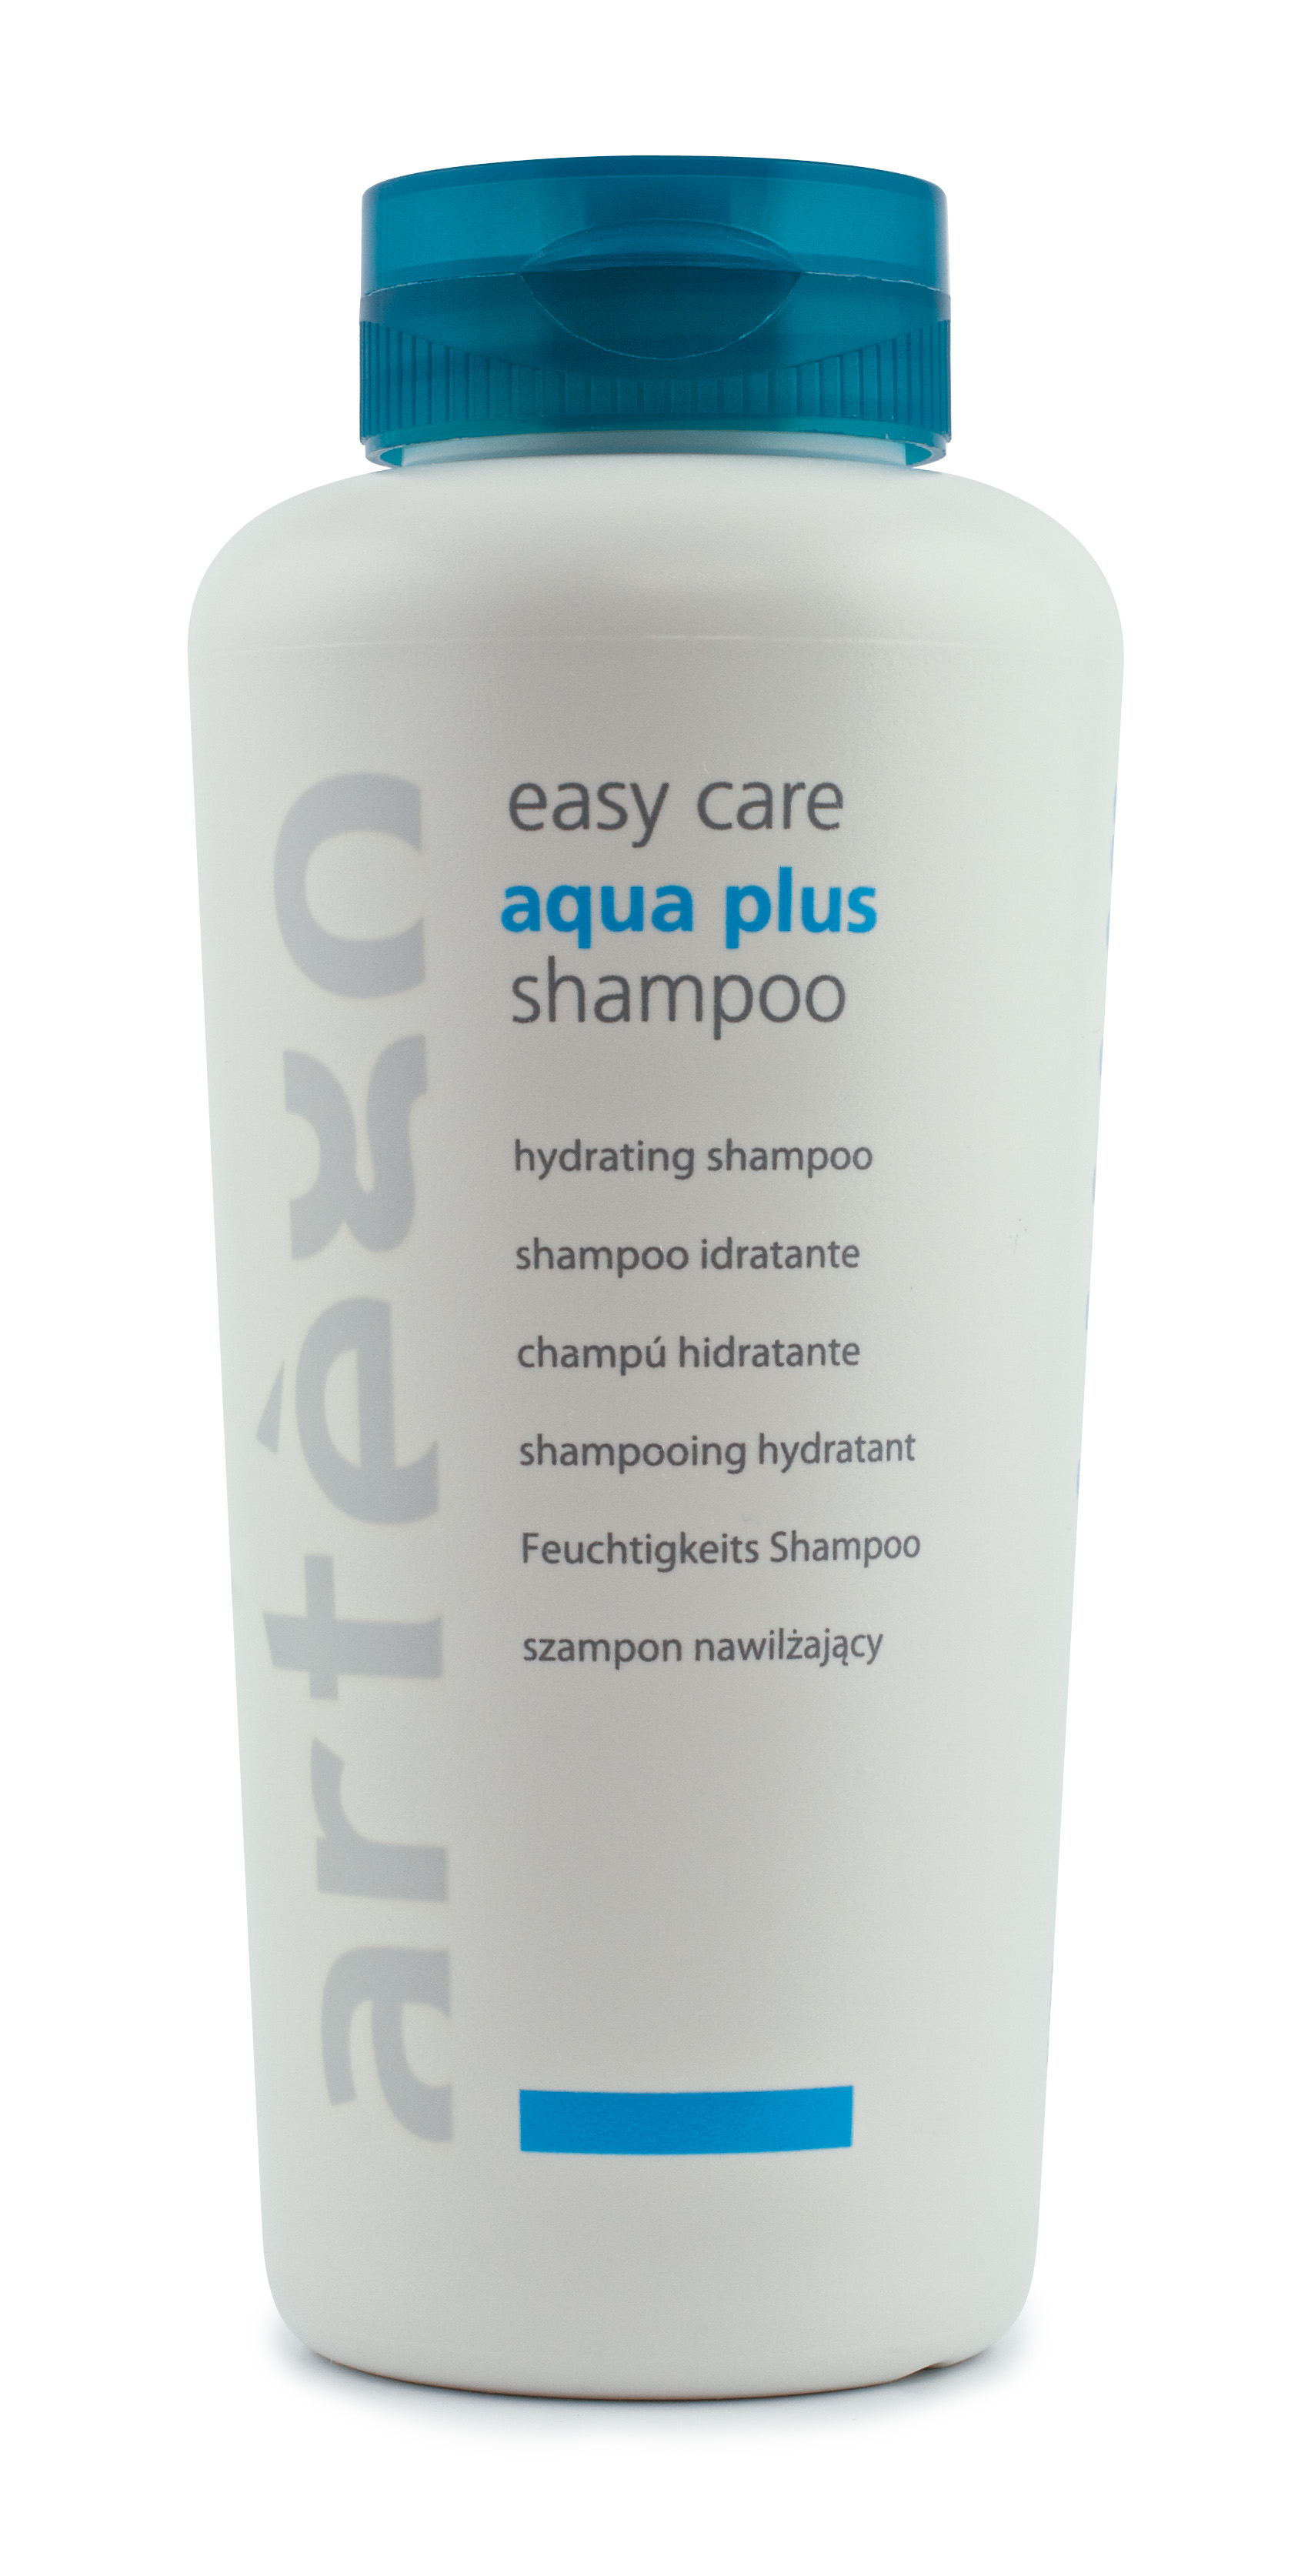 Easy Care Aqua Plus Shampoo